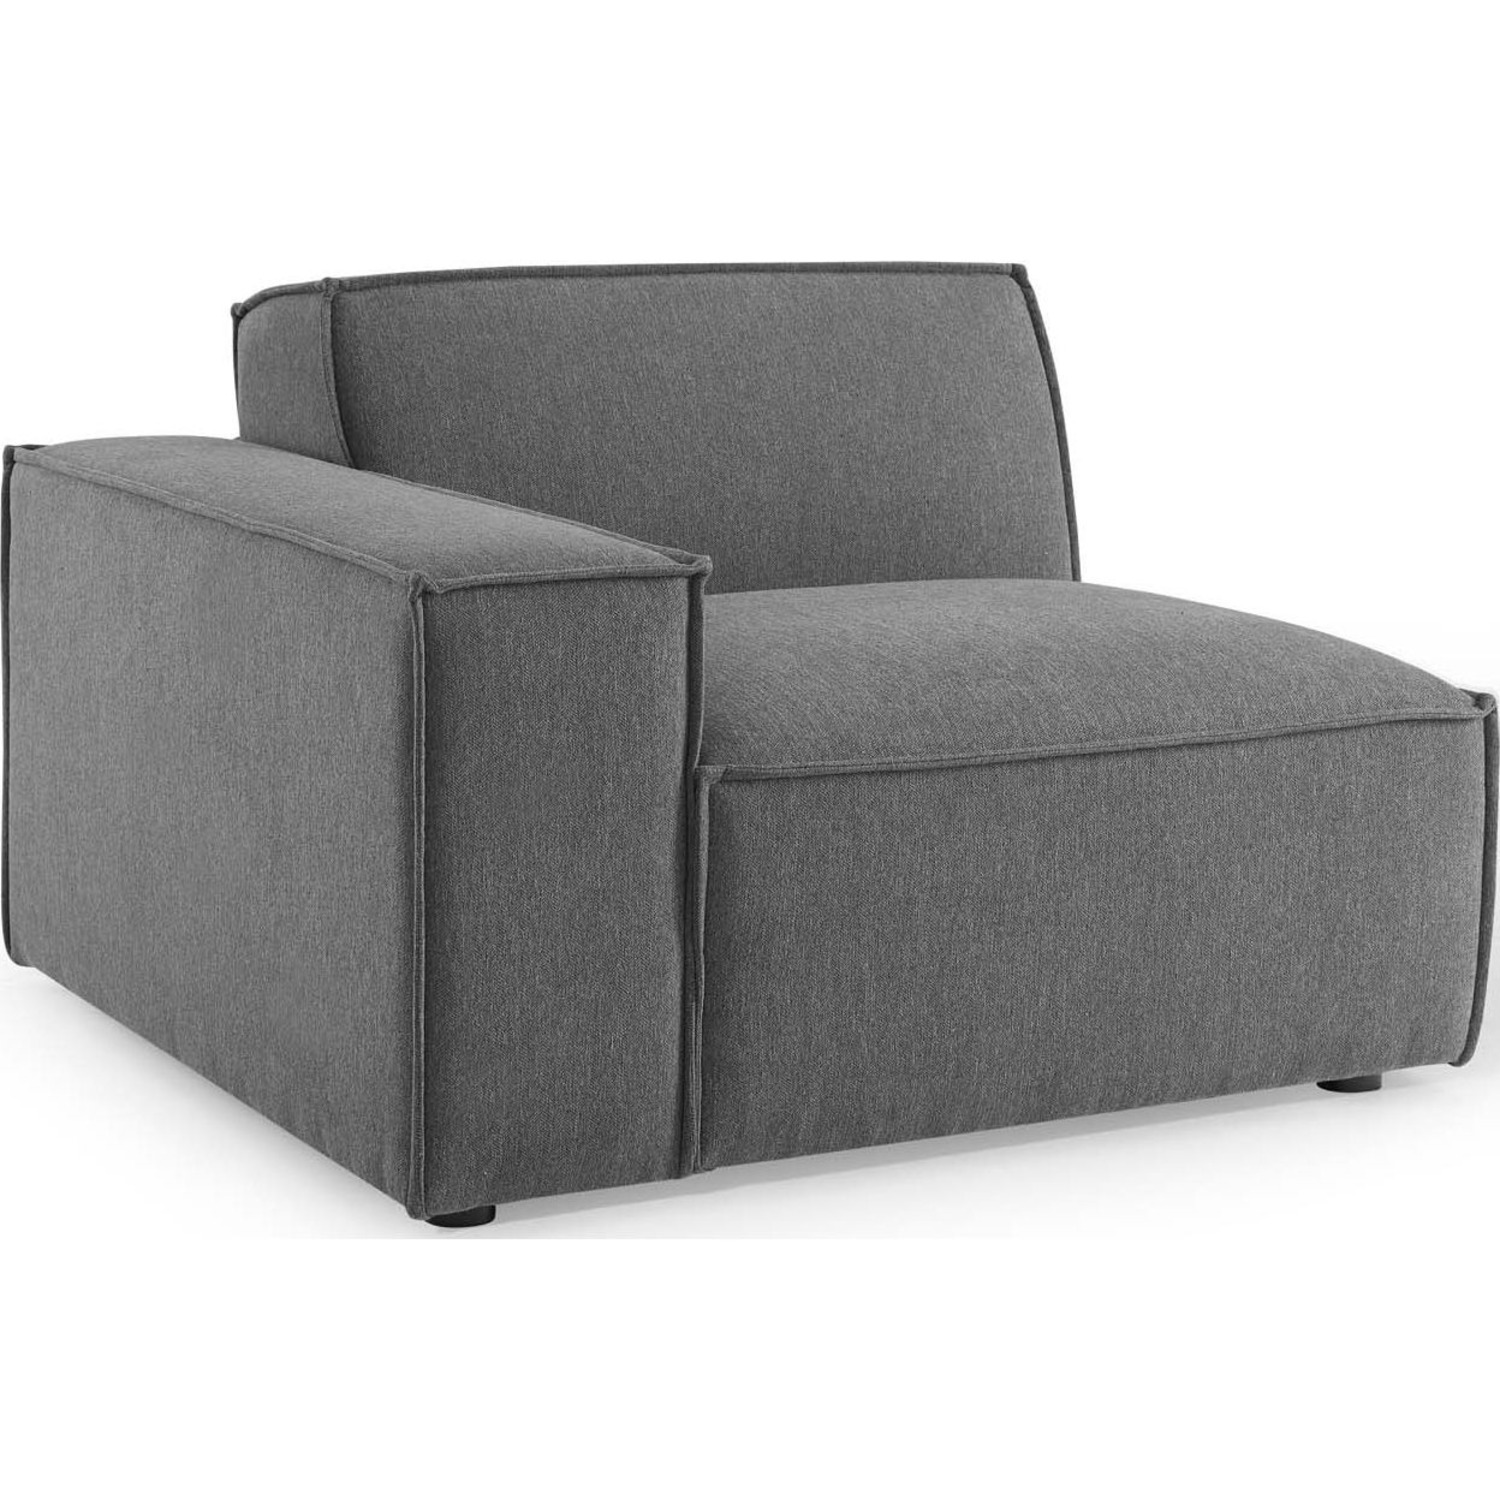 5-Piece Sectional Sofa In Charcoal Fabric - image-4